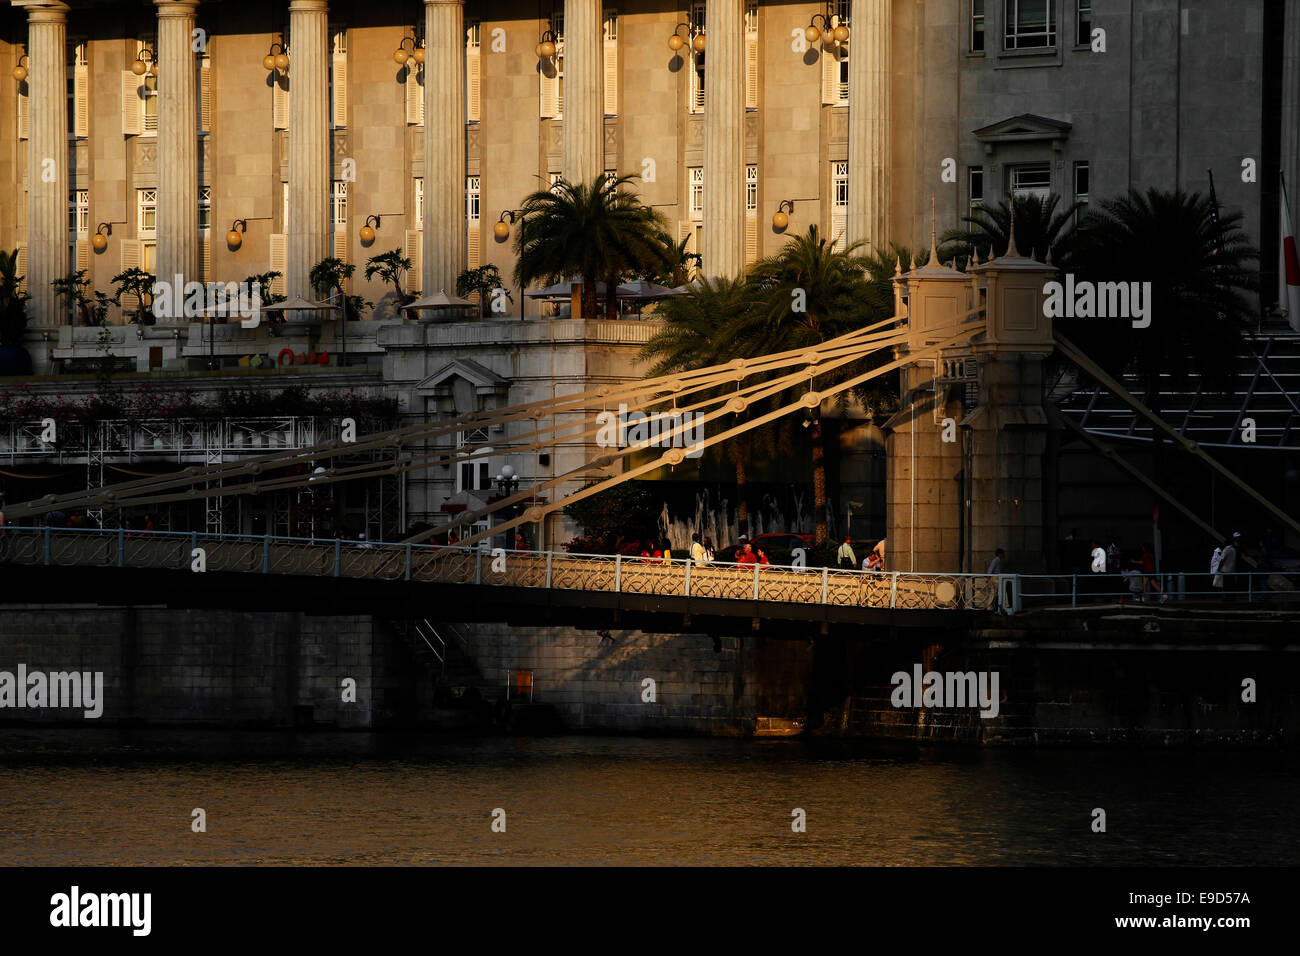 Cavenagh Bridge over the Singapore River with the Fullerton Hotel behind, Colonial District, Singapore - Stock Image